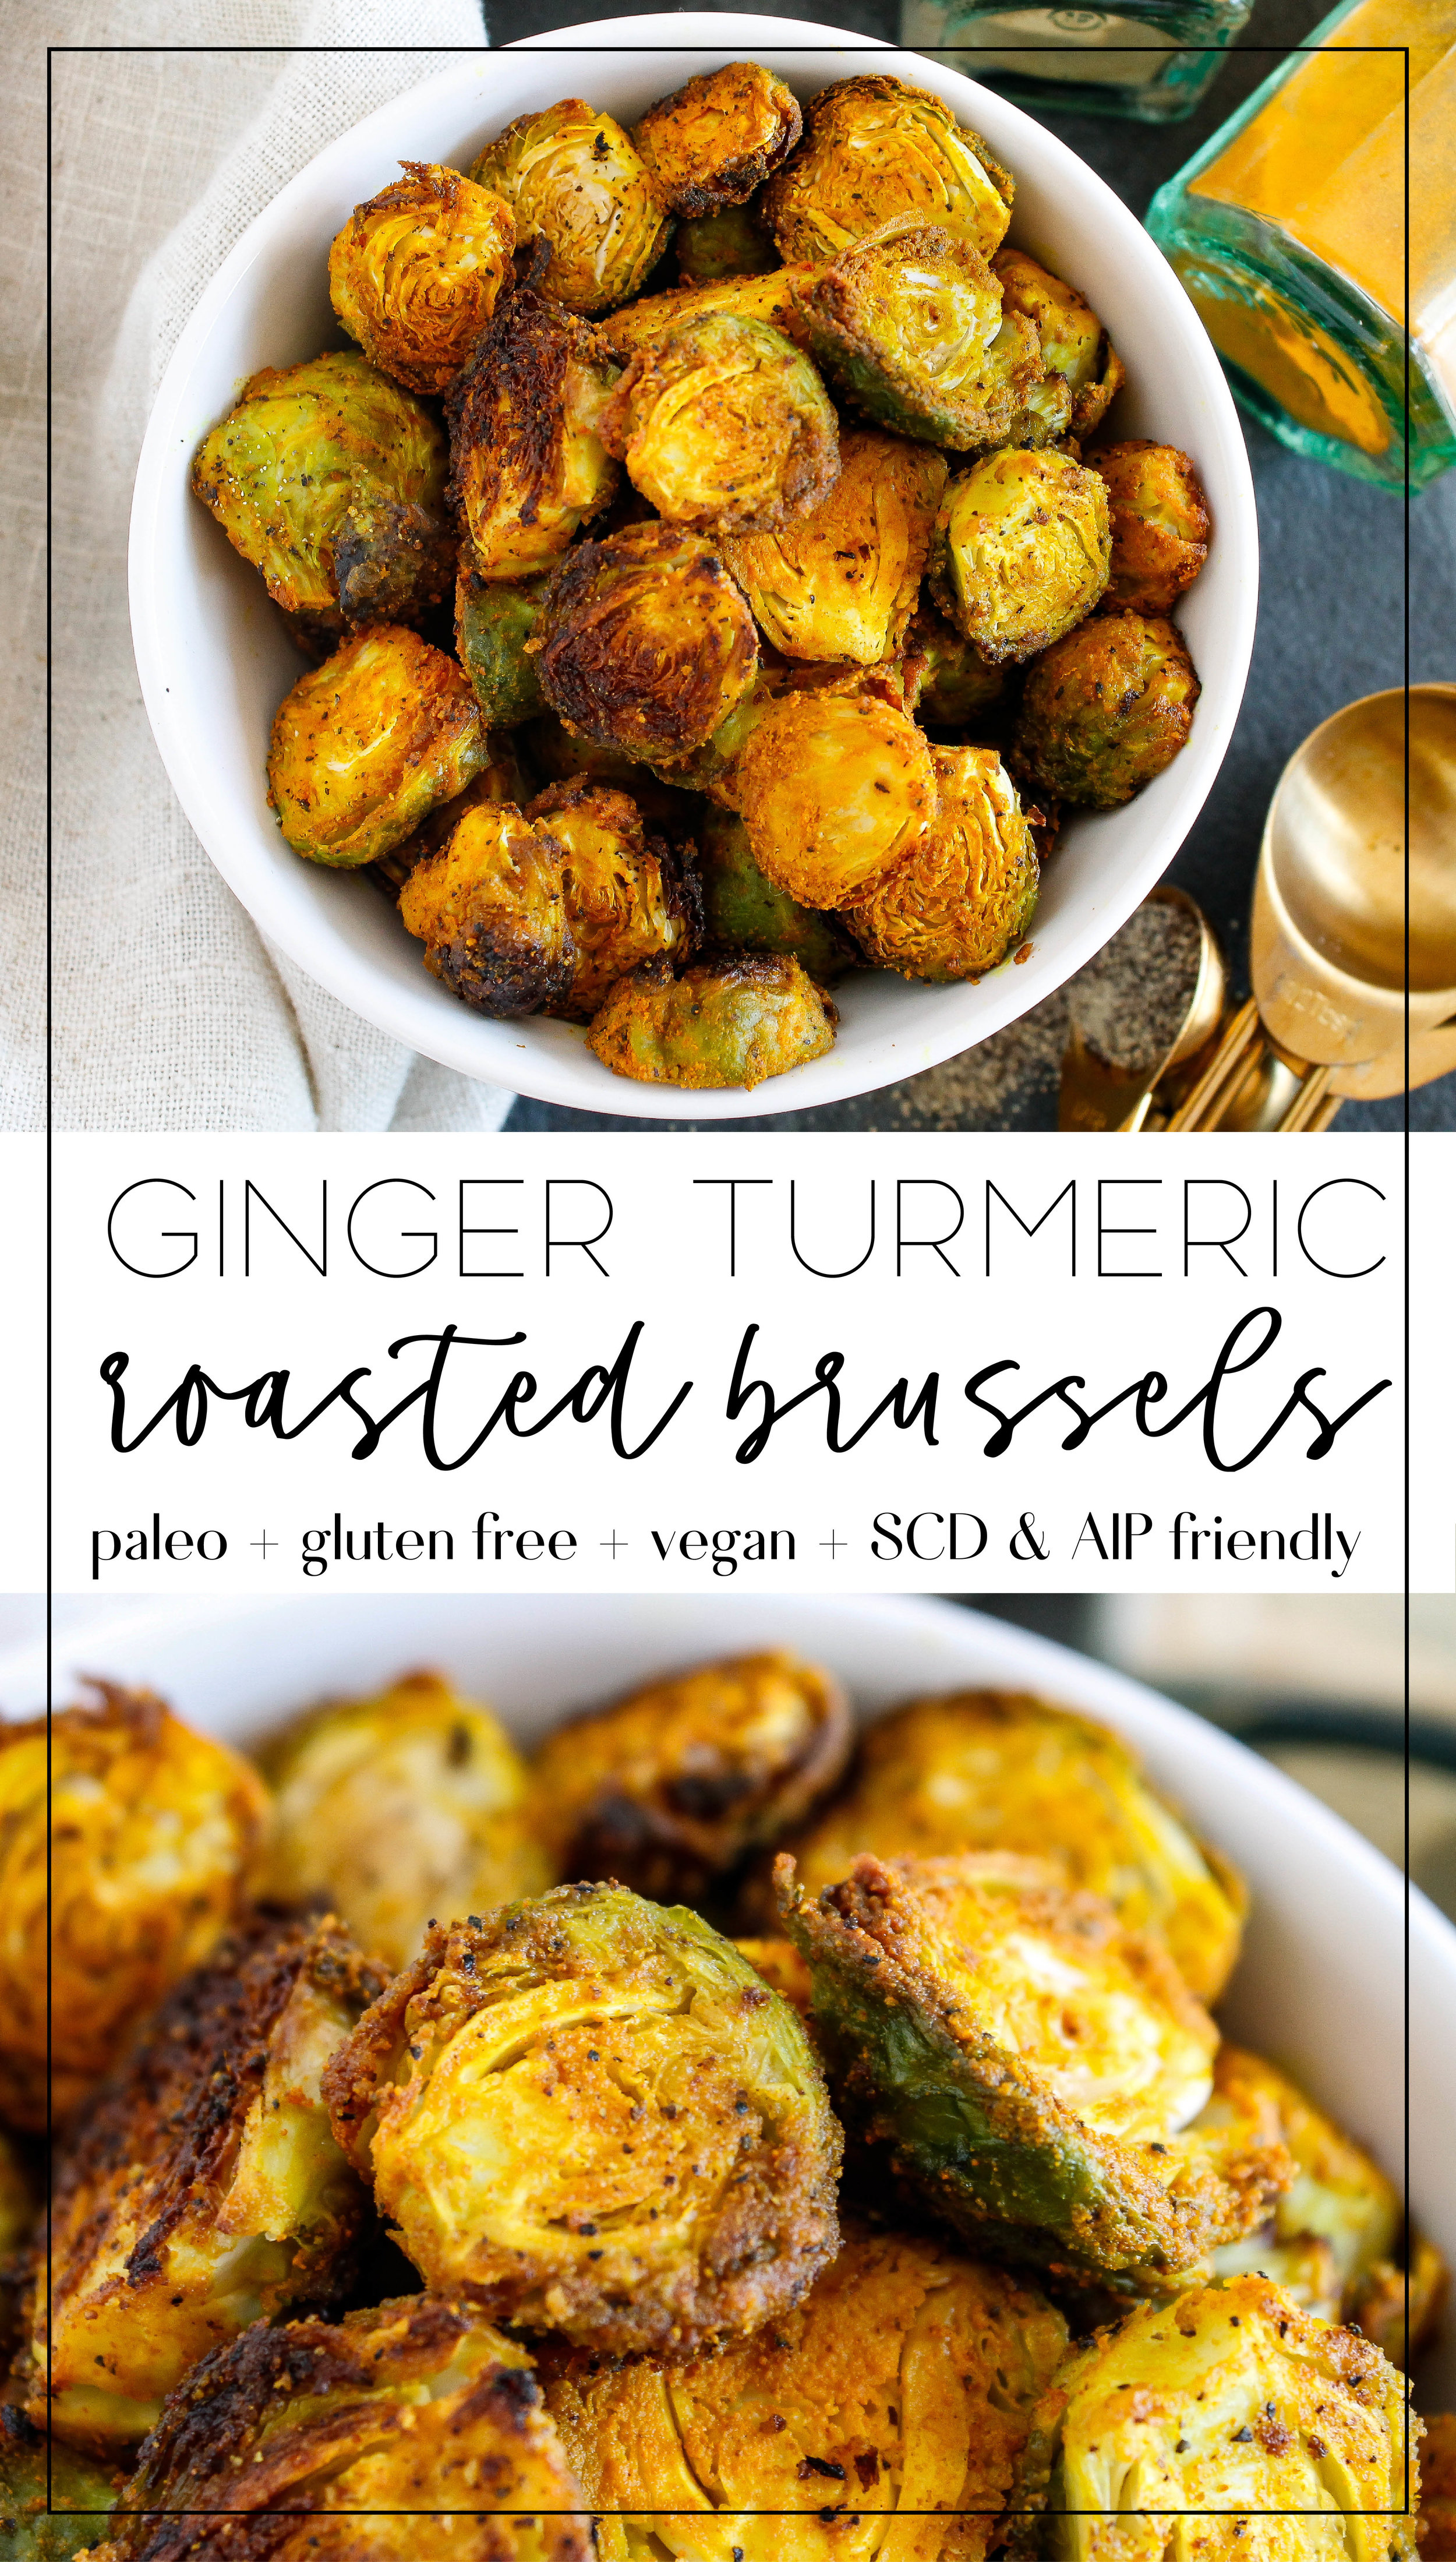 turmeric roasted brussels sprouts || these ginger turmeric roasted Brussel sprouts are the perfect side dish for any meal. They're grain free, gluten free, vegan, paleo AND Specific Carbohydrate Diet. The turmeric also helps with anti inflammation! #specificcarbohydratediet #scddiet #healthysidedish